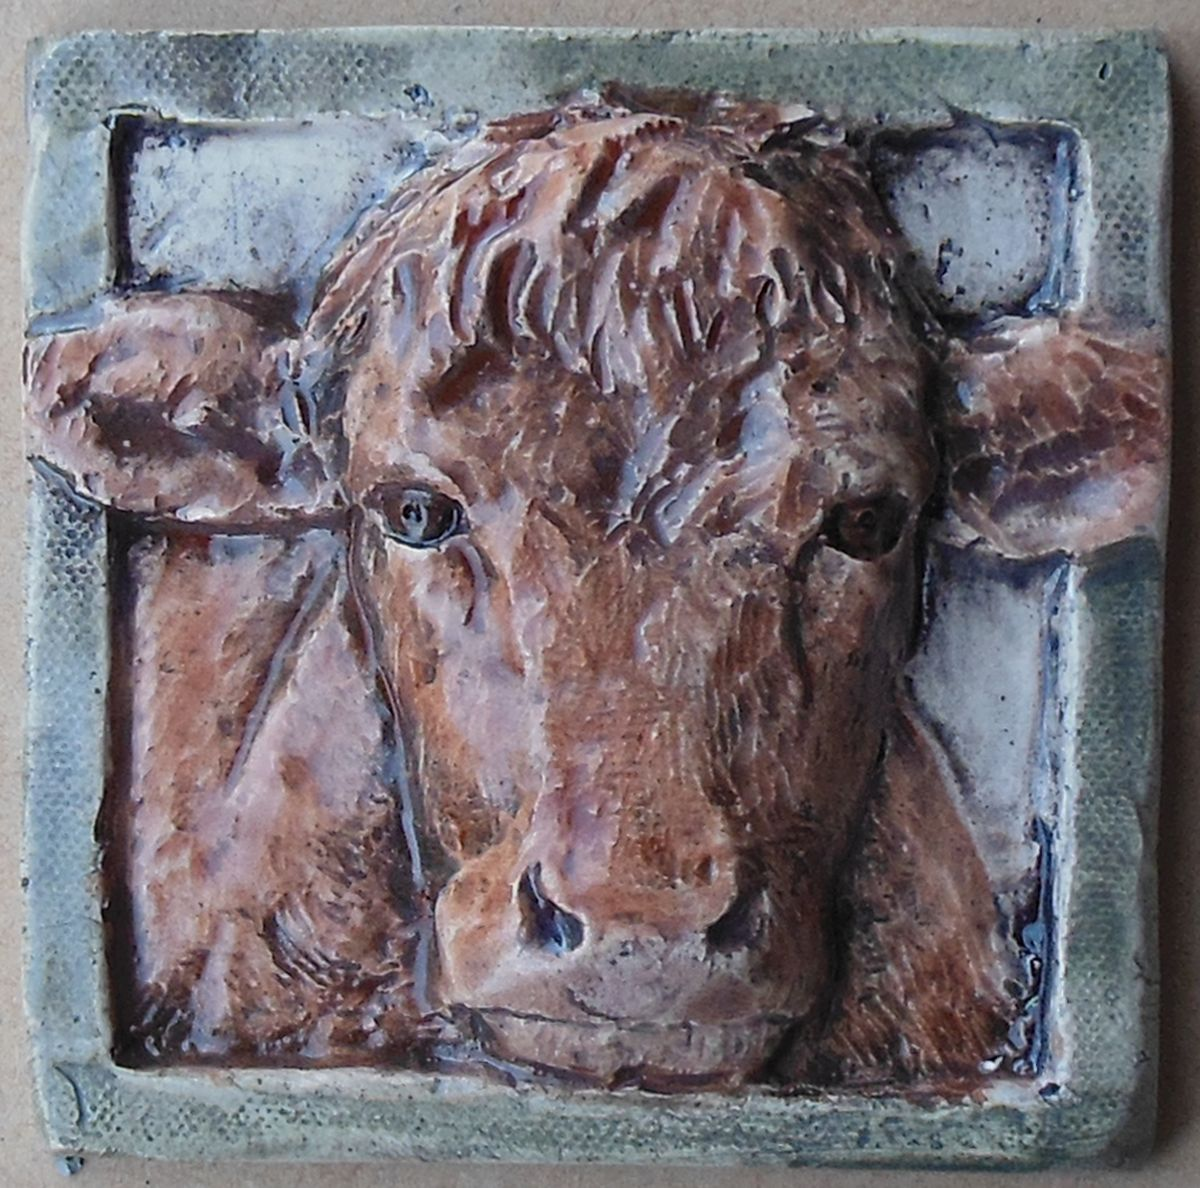 Beef cow ceramic tile 4x4 3200 special likes pinterest beef cow ceramic tile 4x4 3200 dailygadgetfo Gallery